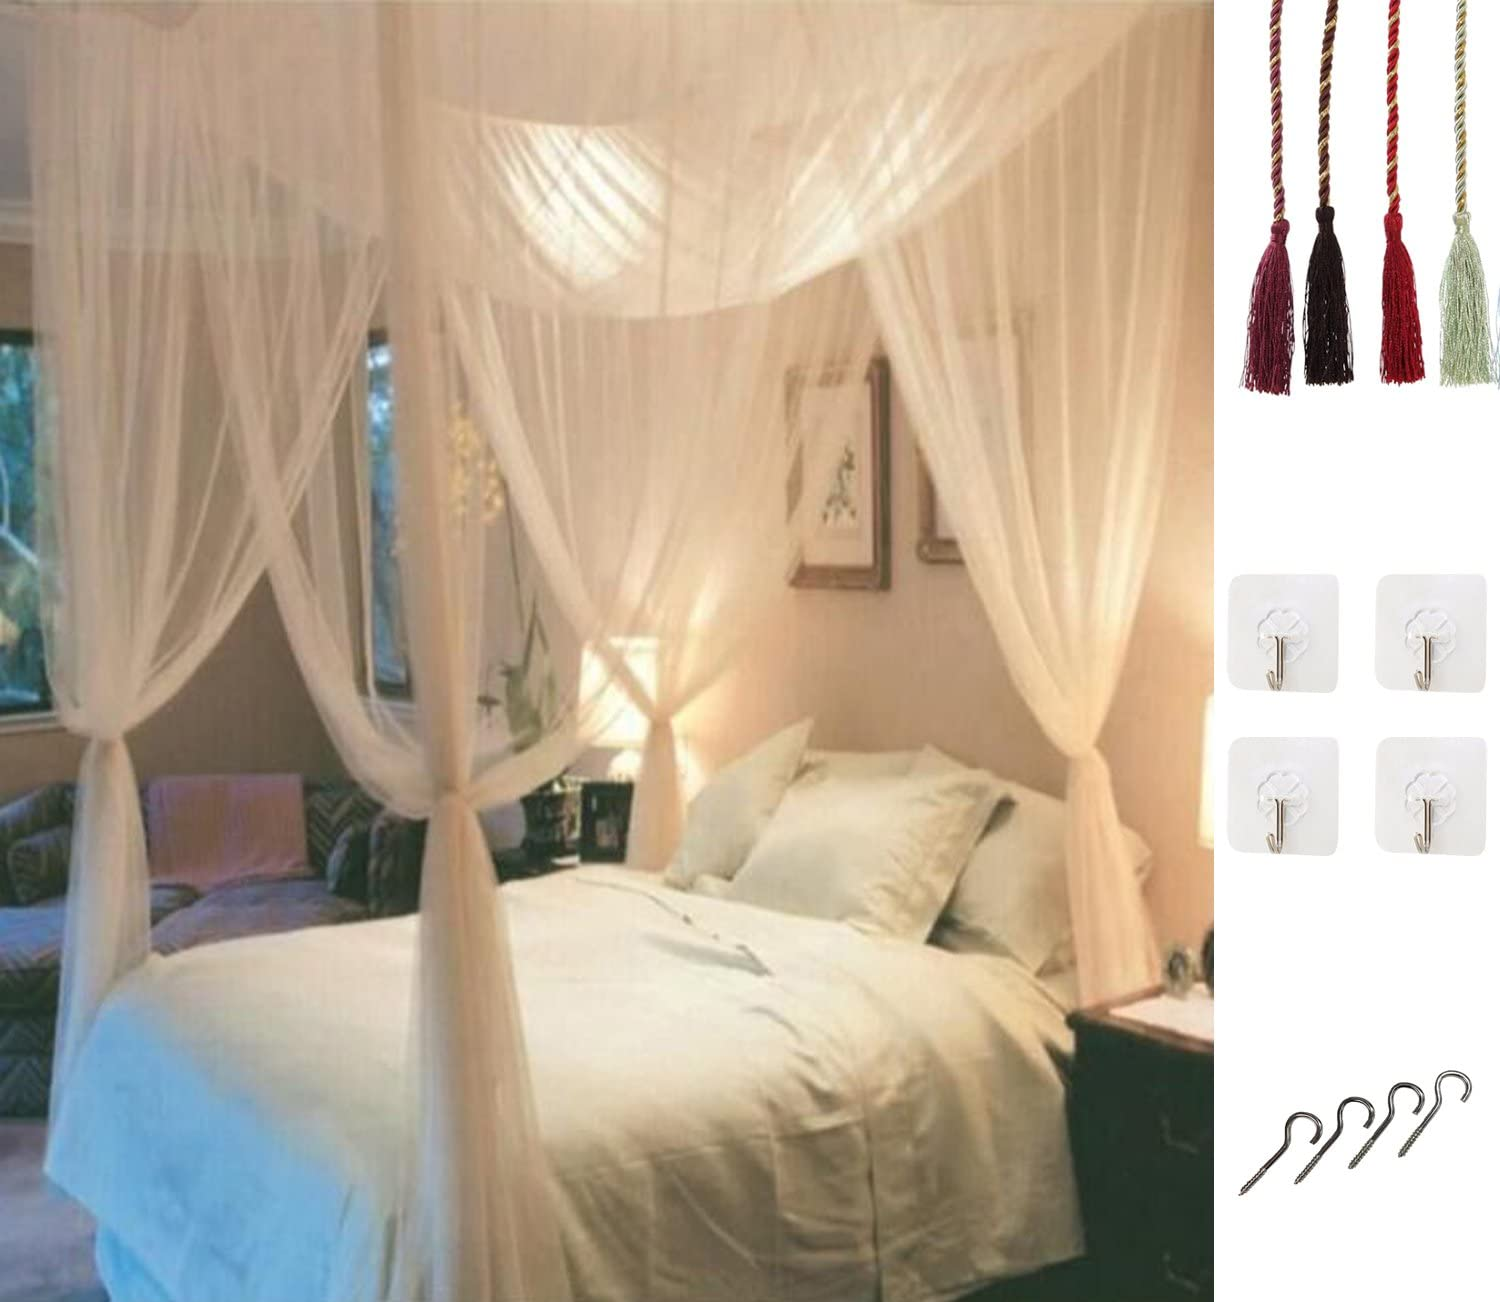 There are several different ways to hang curtains over your own canopy bed, including this rope system